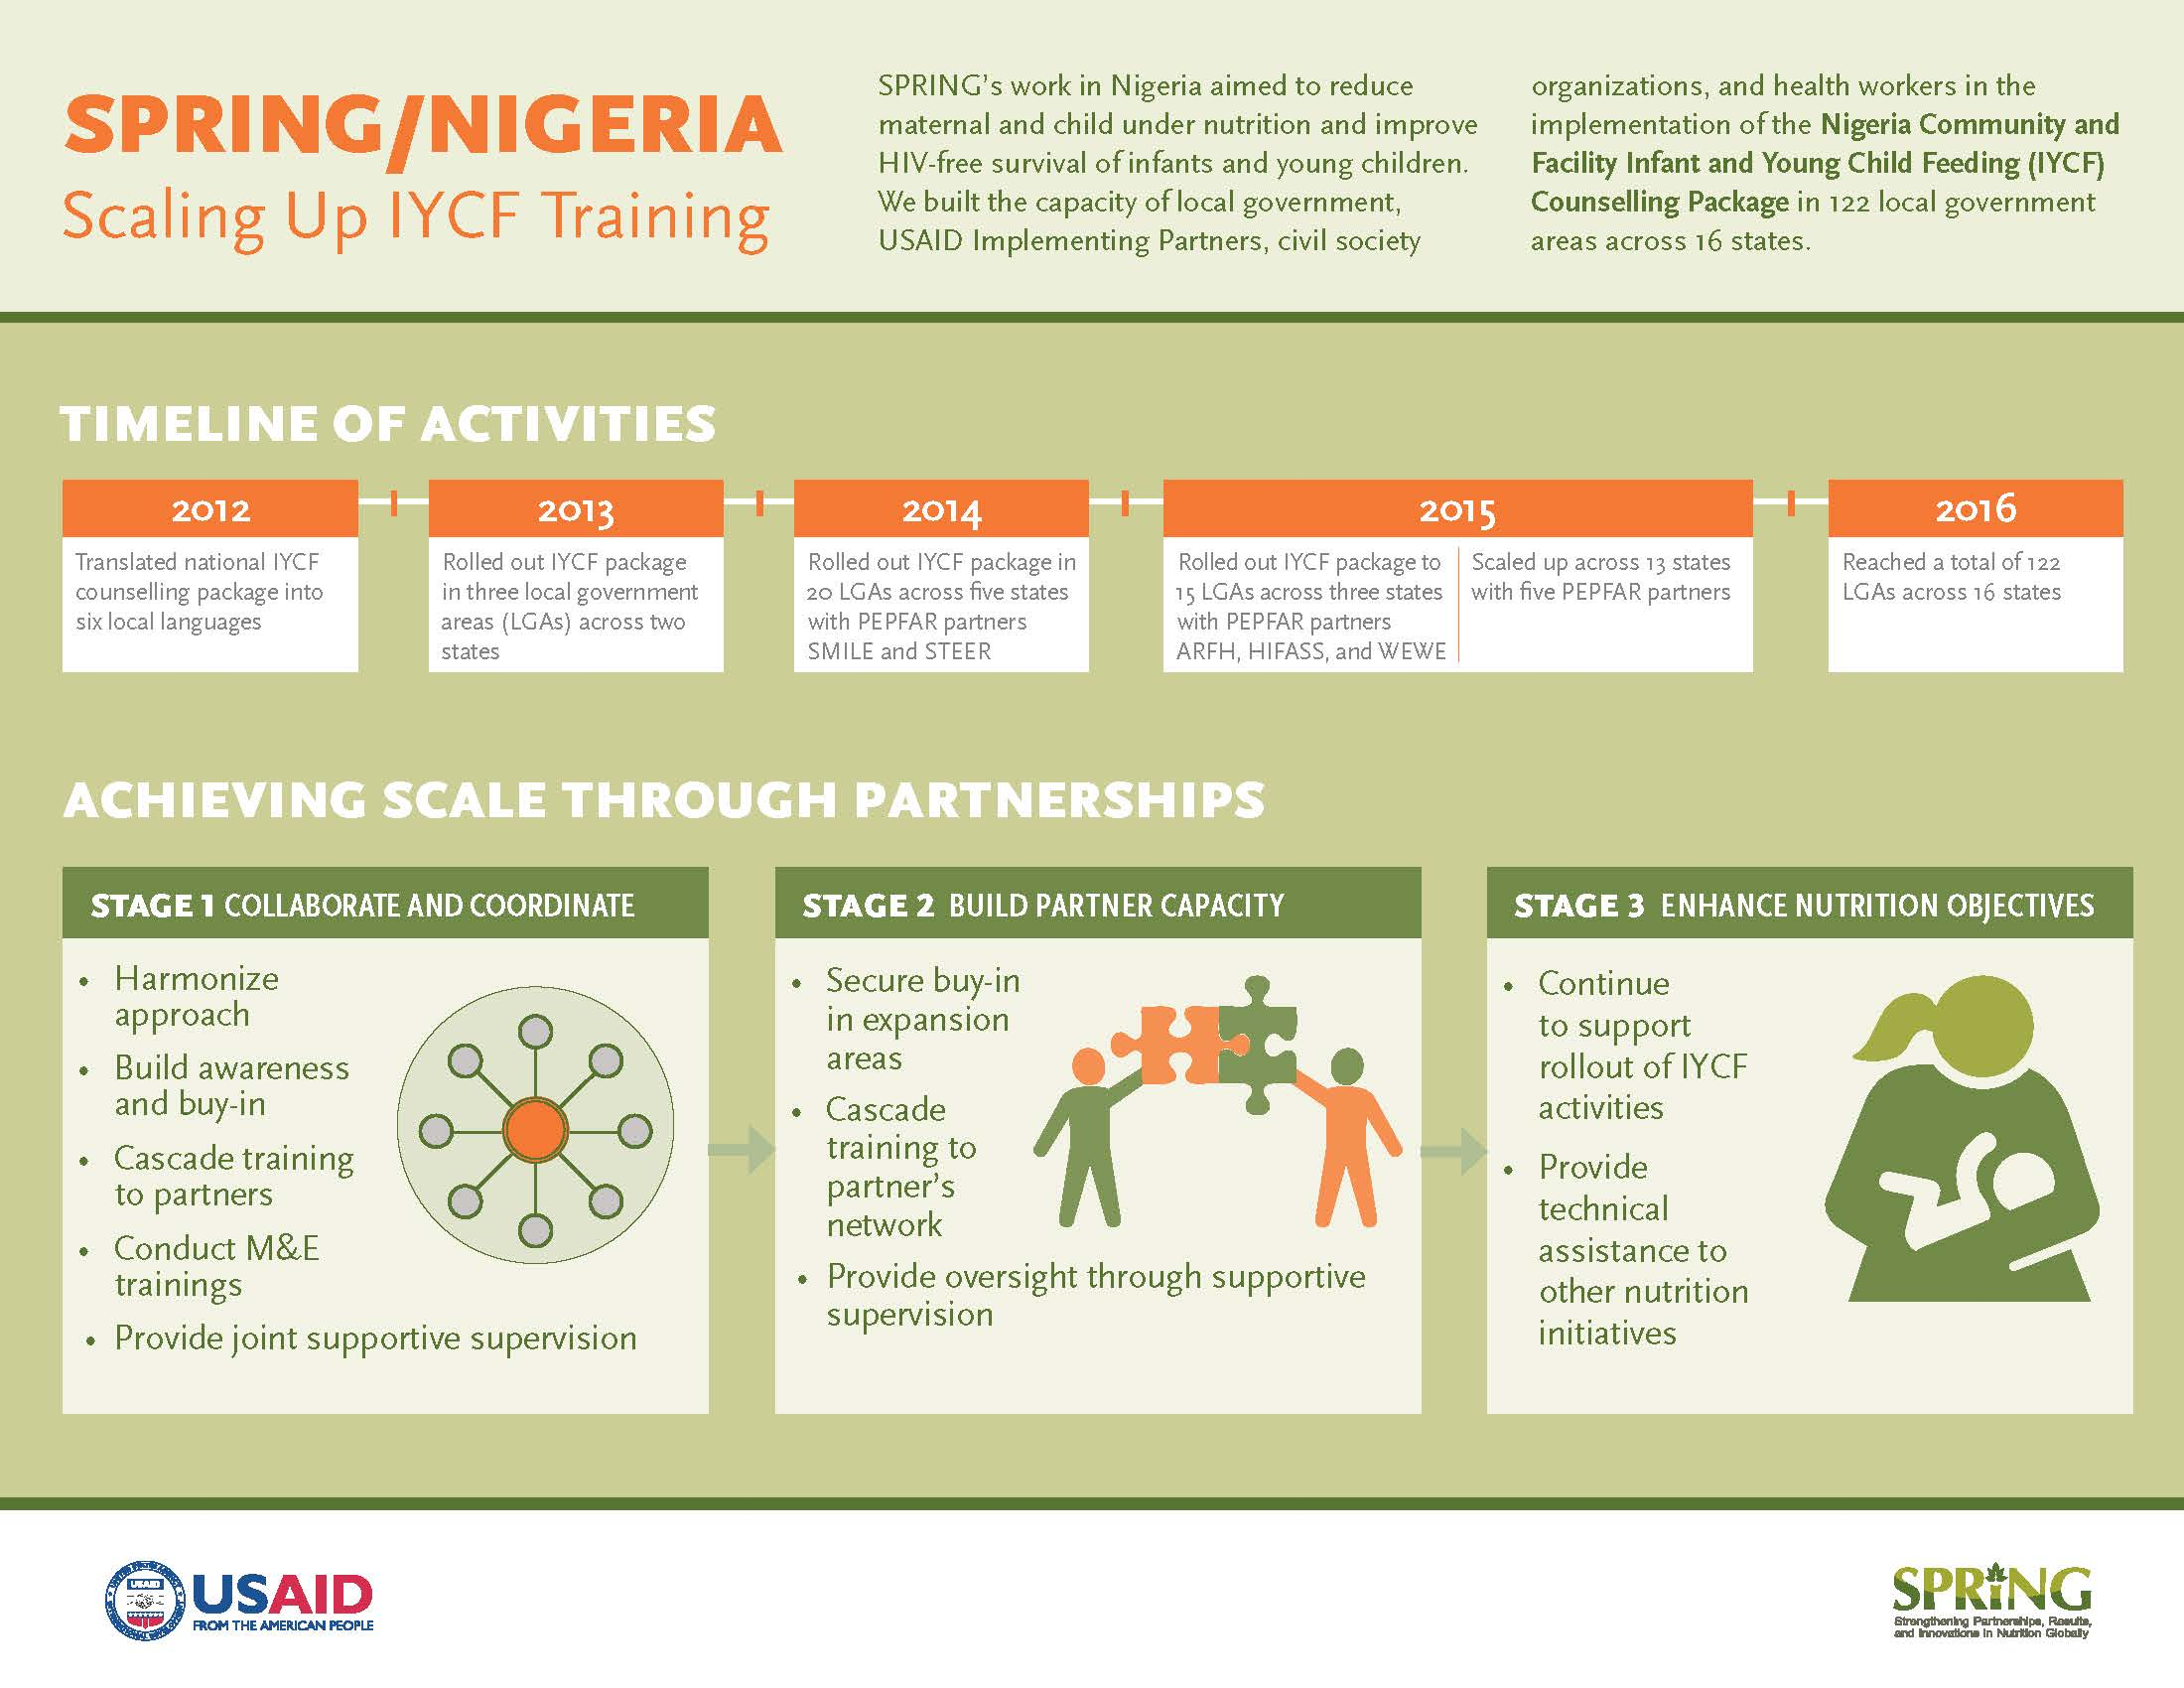 SPRING/Nigeria - Scaling Up IYCF Training page 1